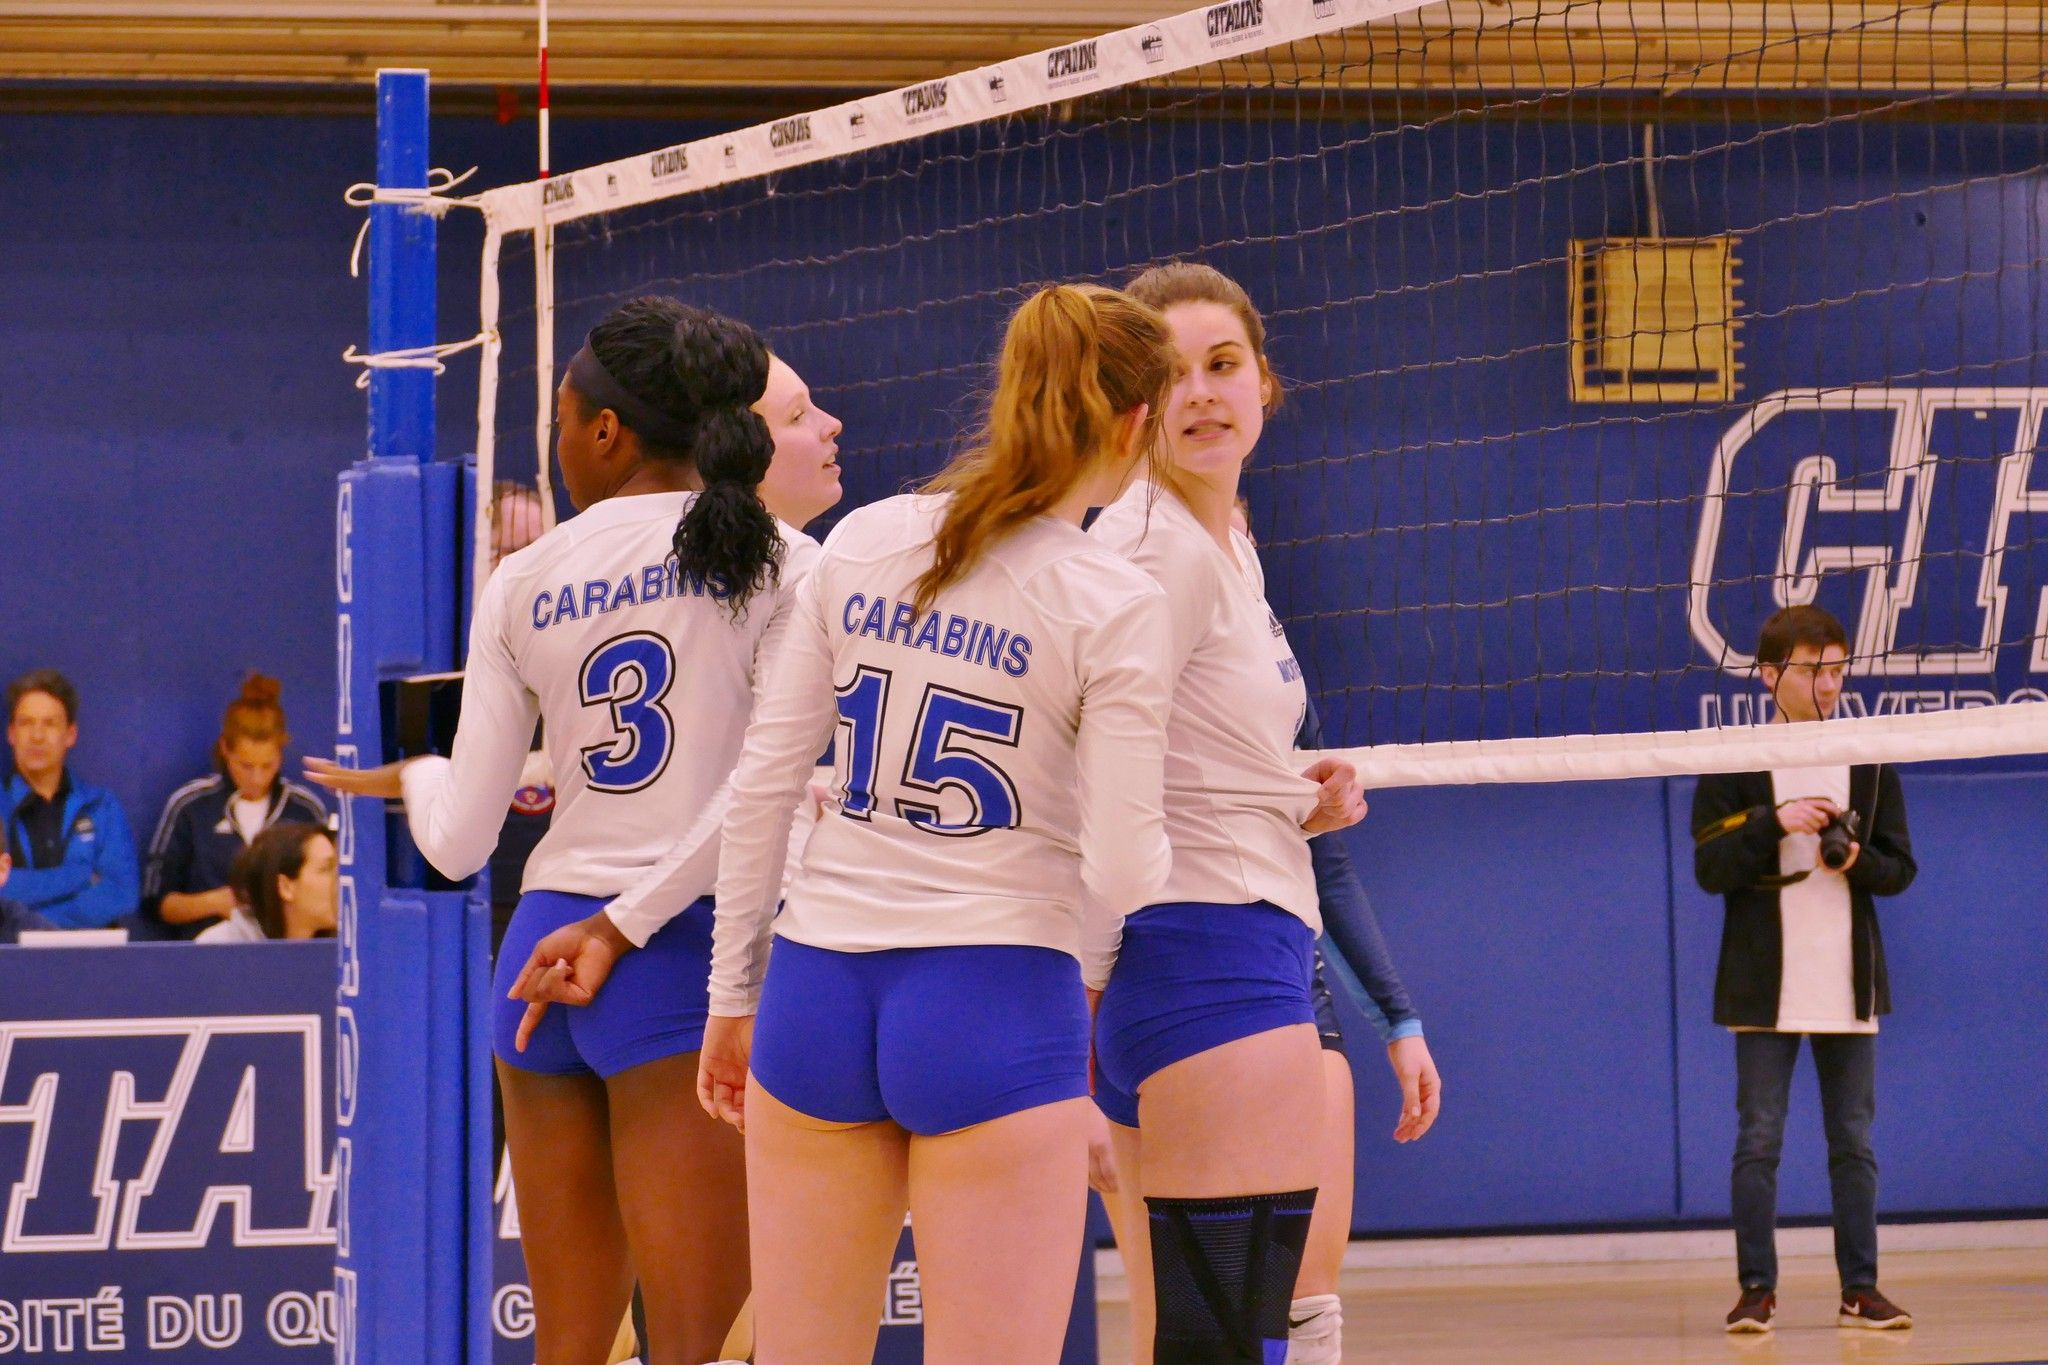 Https Flic Kr P 25aonm4 Panasonic Fz1000 Women S College Volleyball Montreal 3 March 2018 46 In 2020 Volleyball College Montreal